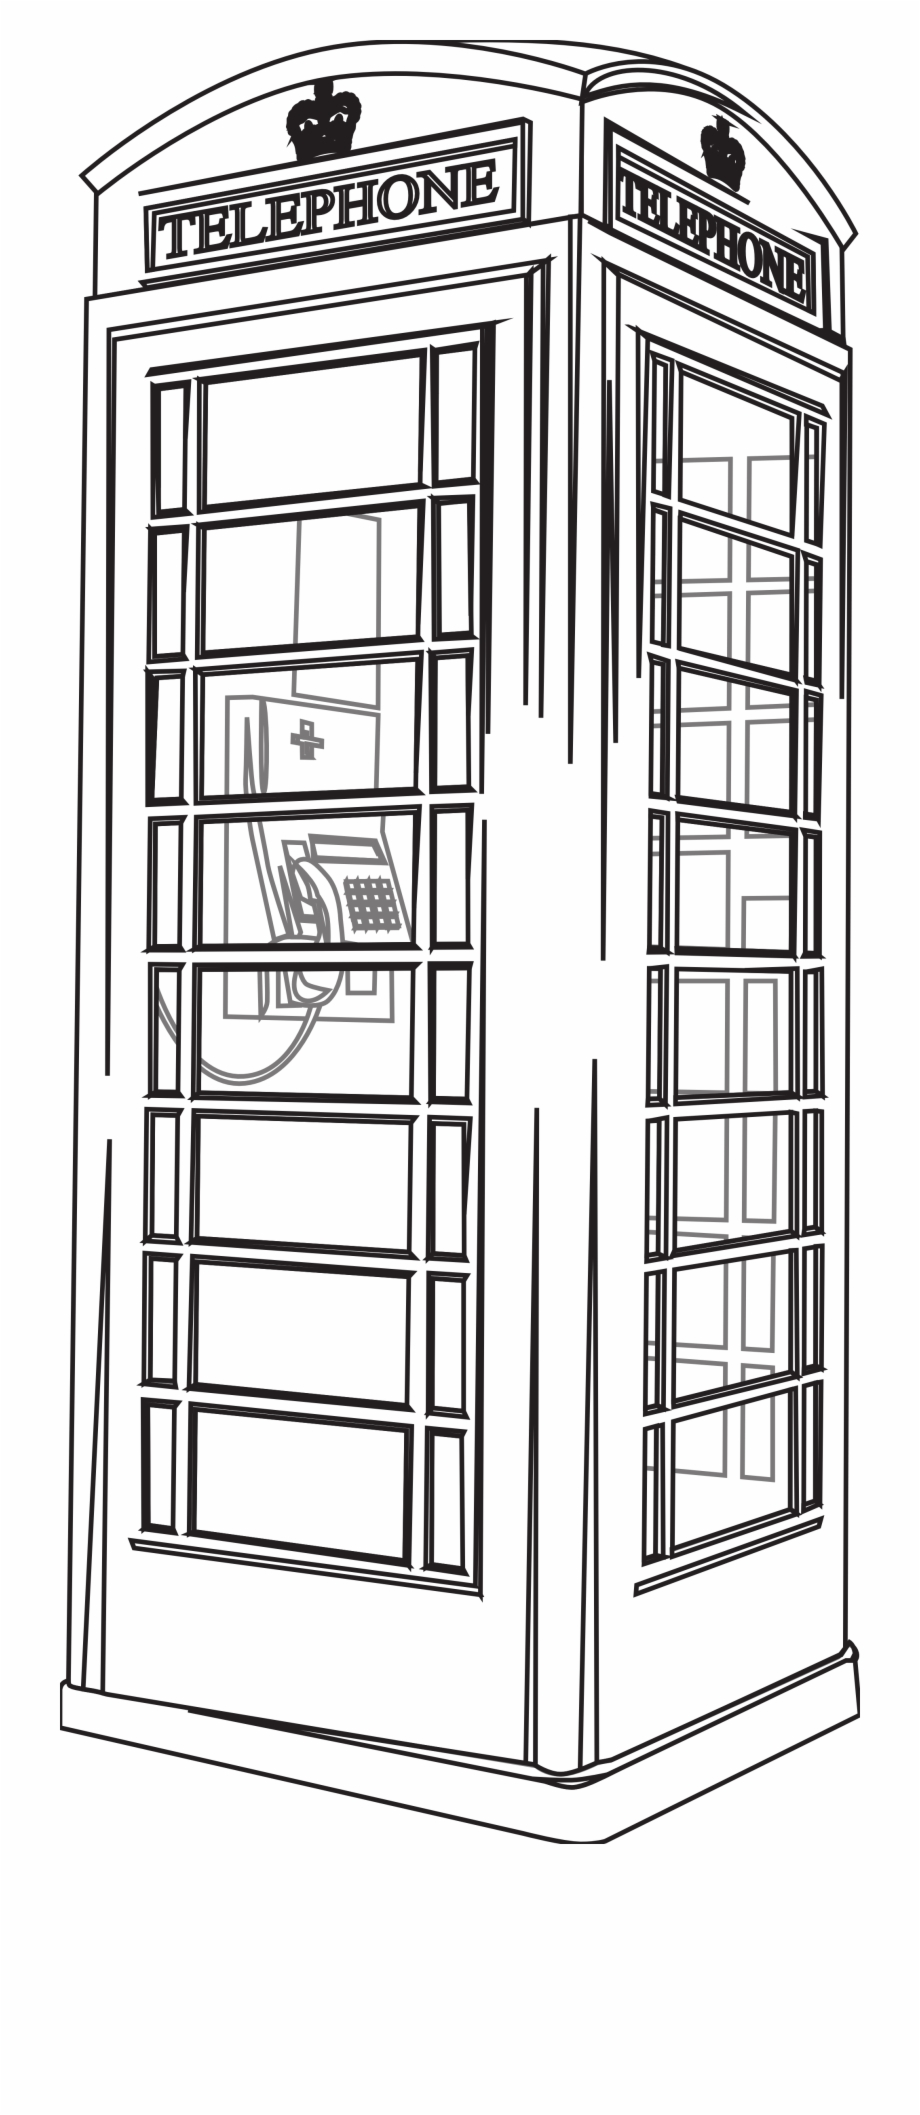 London clipart black and white image black and white Black And White London Phone Booth - Draw London Telephone Box Free ... image black and white